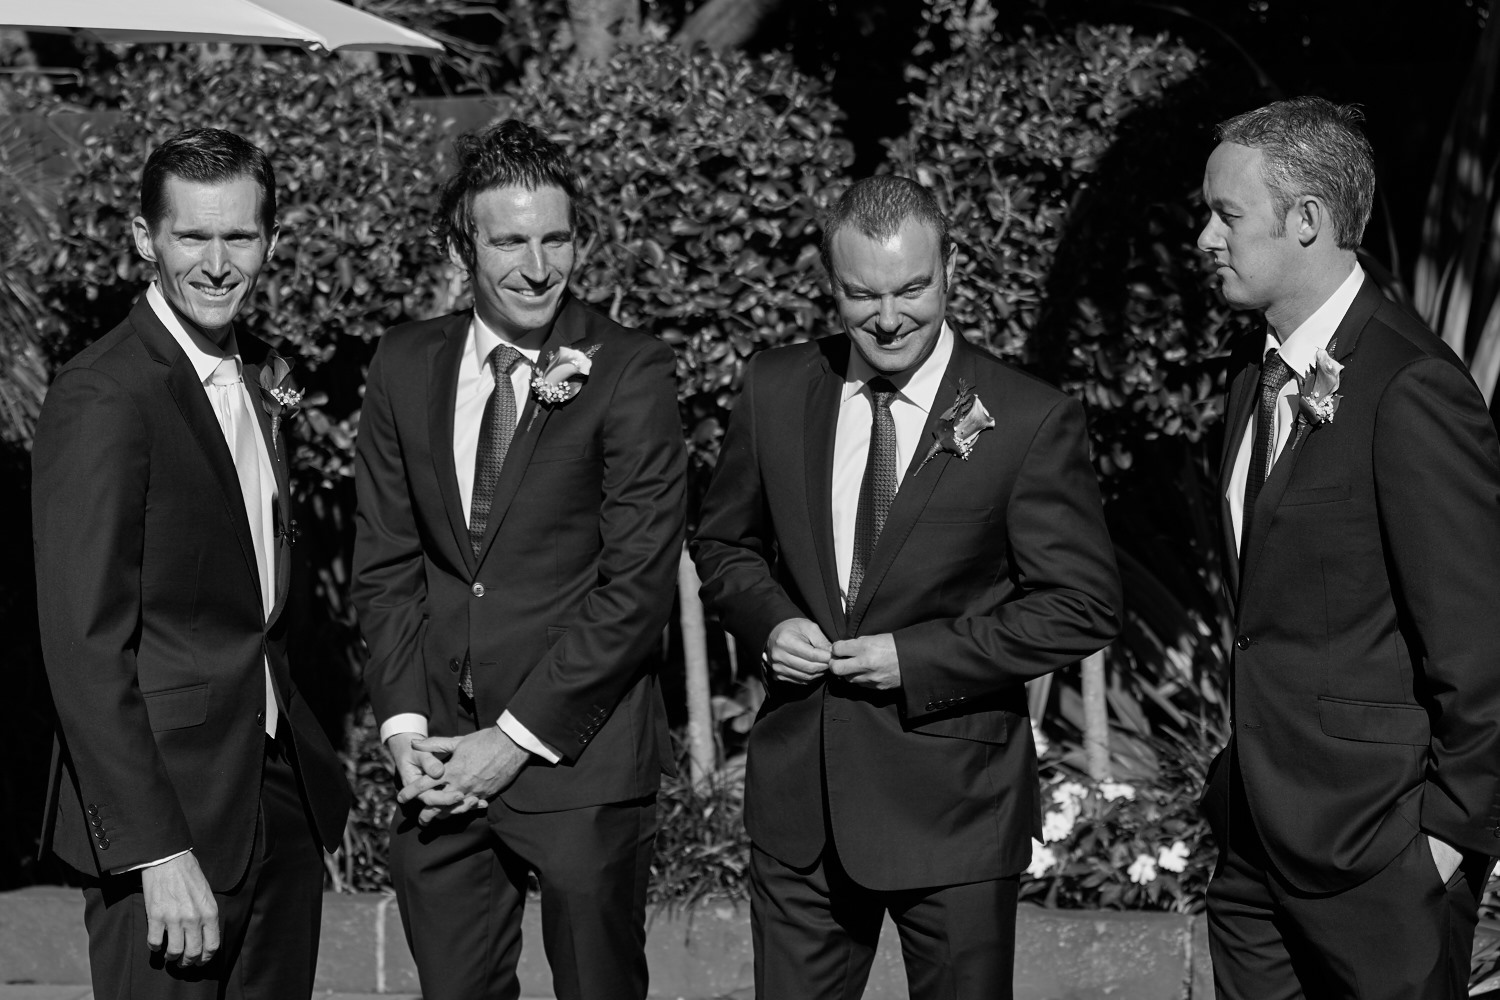 groom and groomsmen waiting